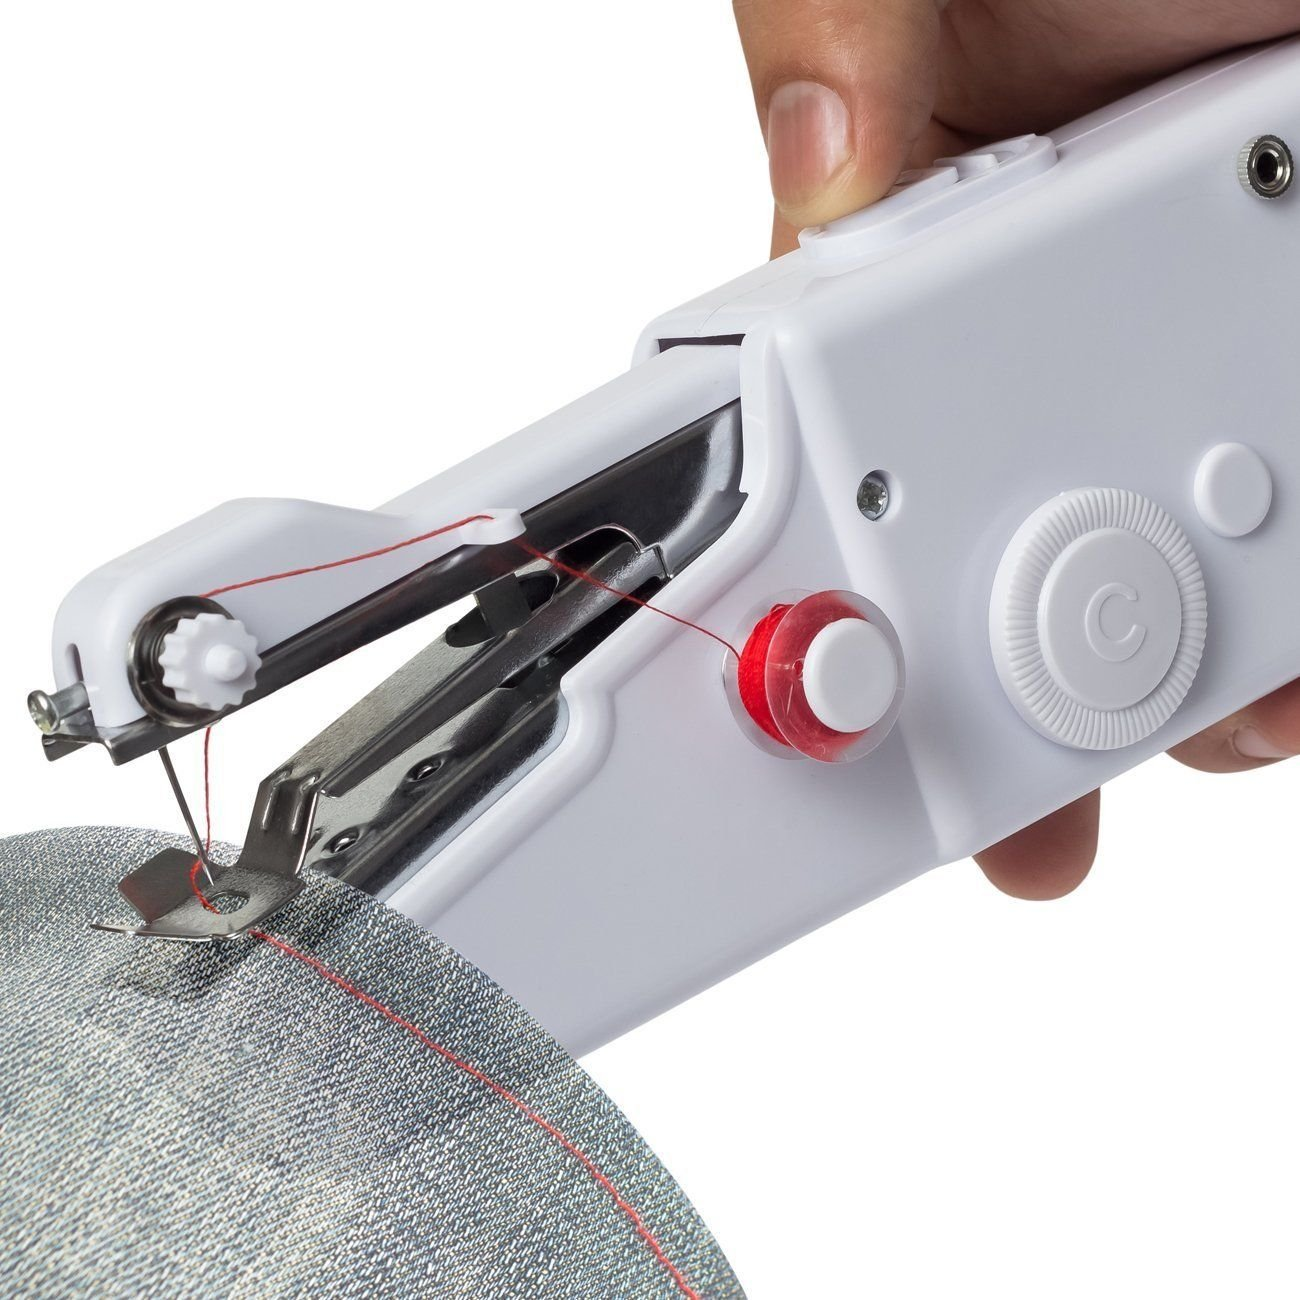 Mini Portable Household Handy Stitch Electric Handheld Sewing Machine +Bonus supplier_modernway1984 by willynsional